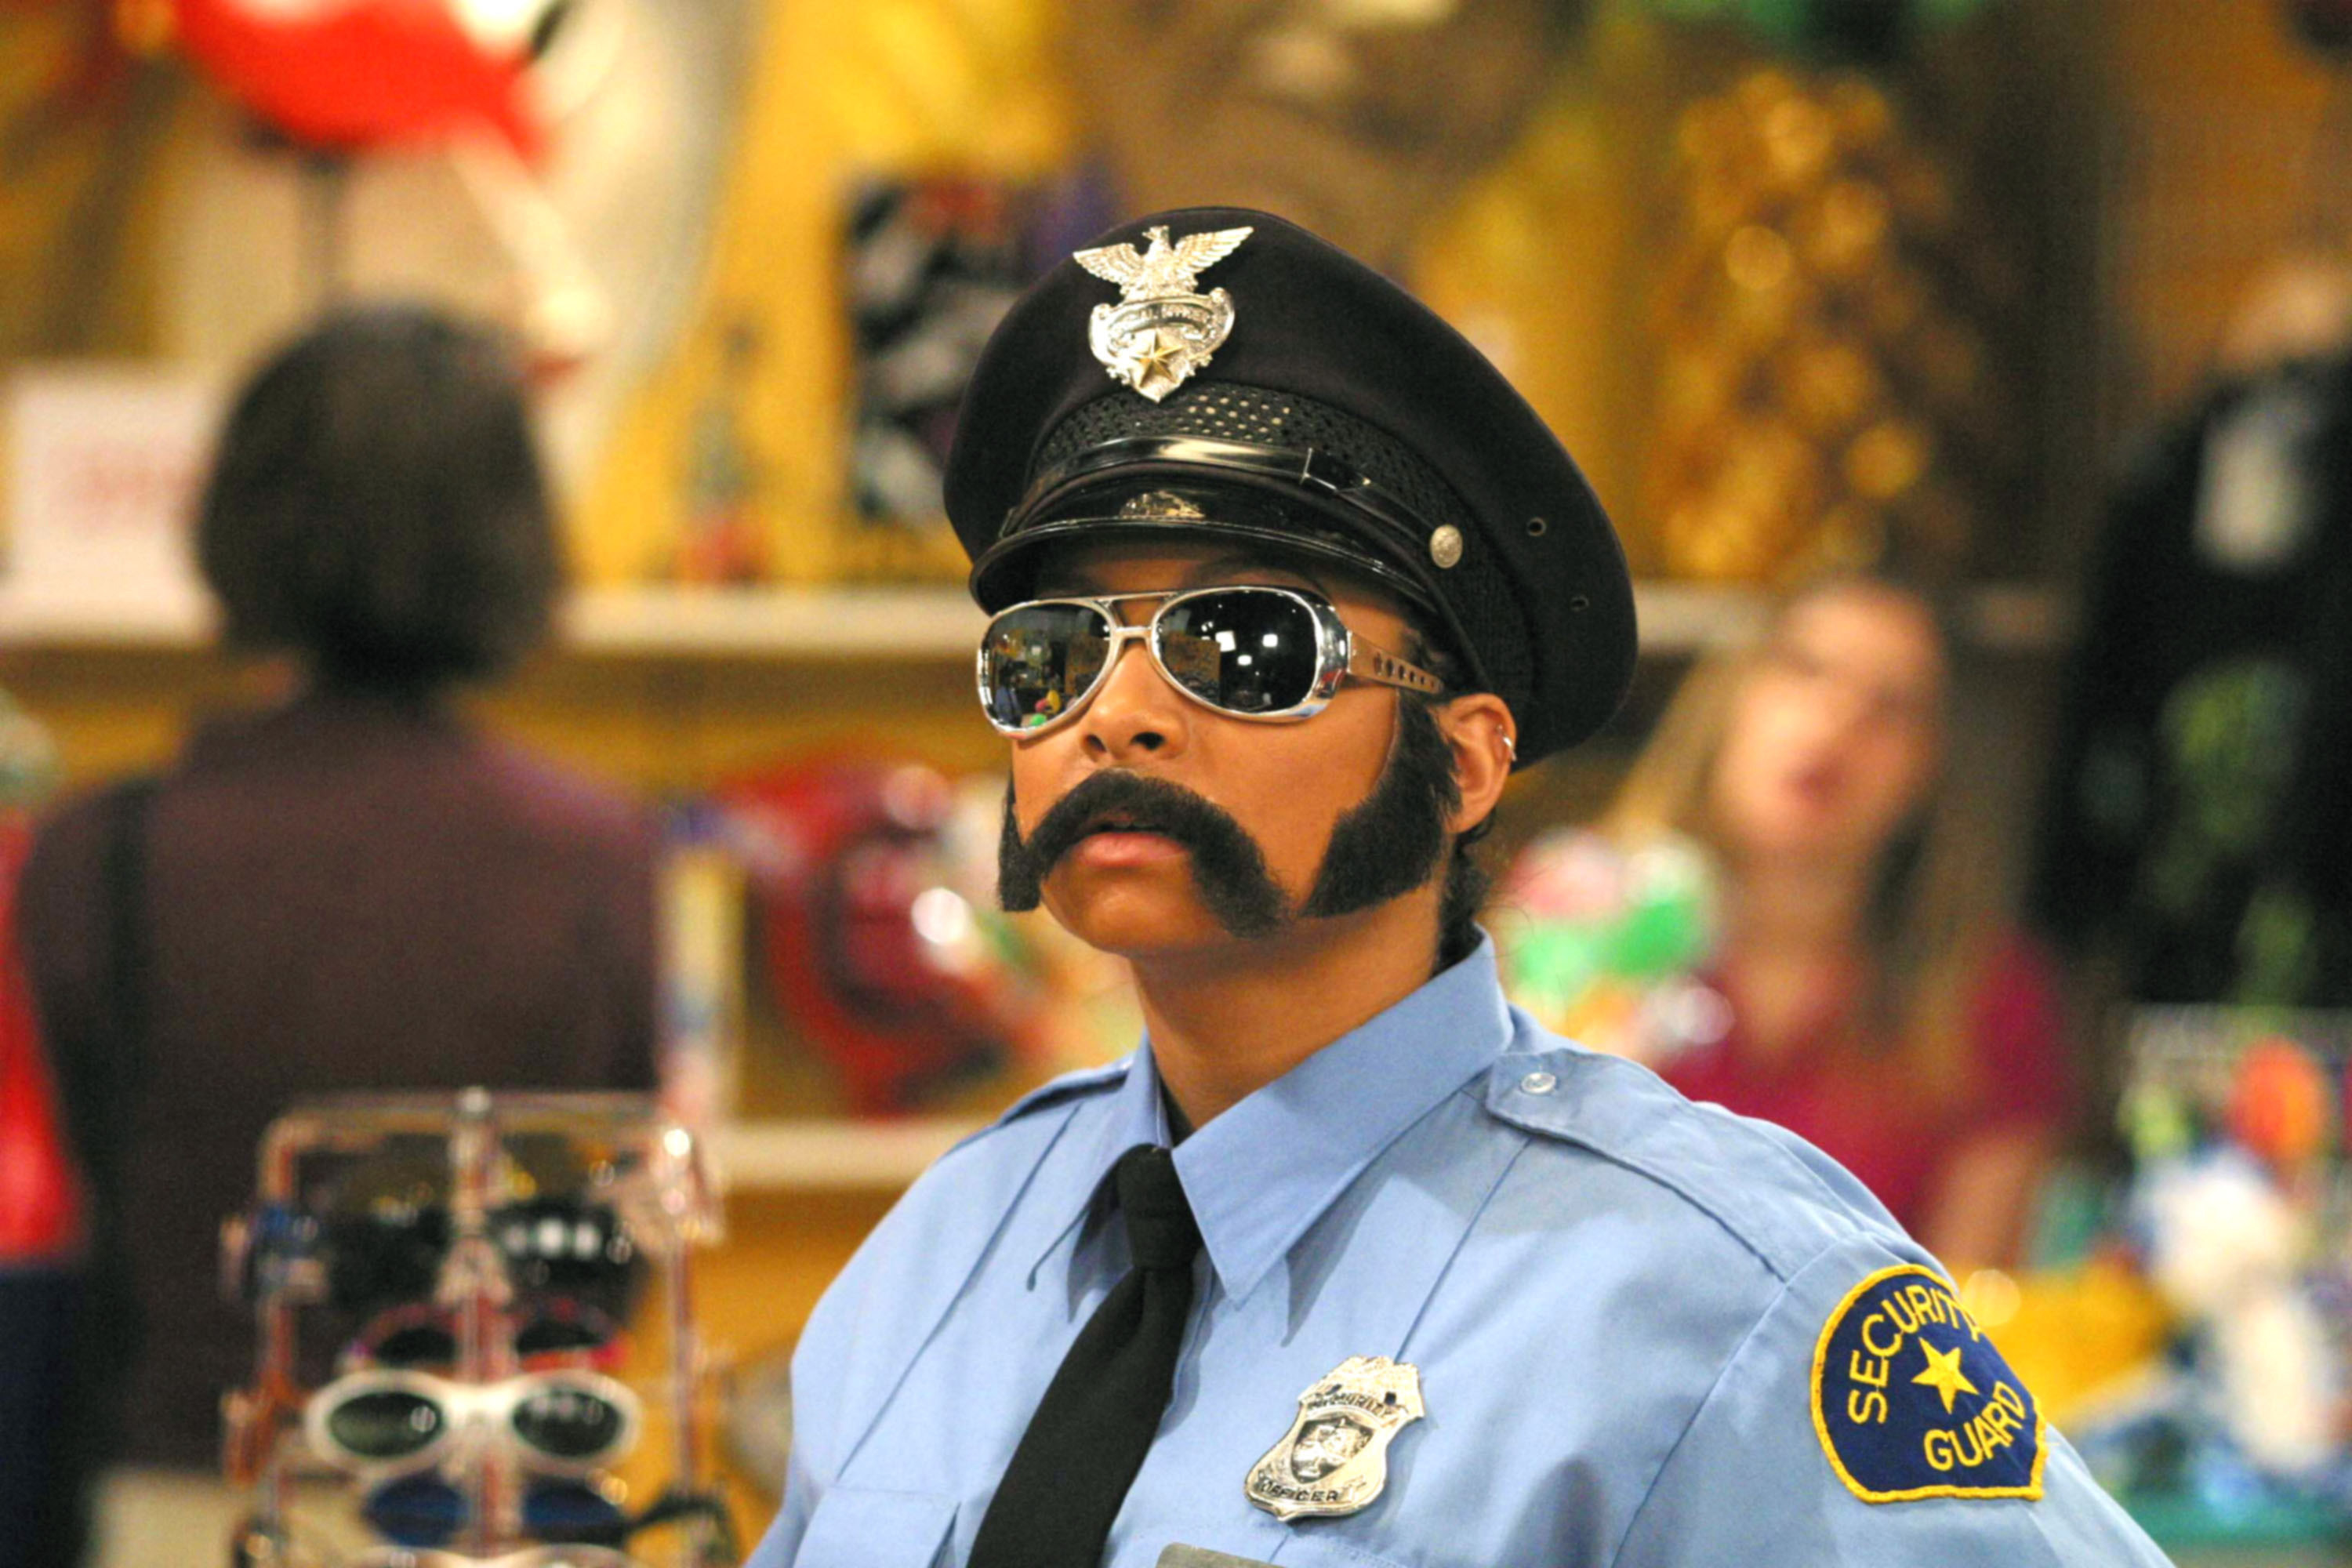 Raven-Symone dressed up like a male cop